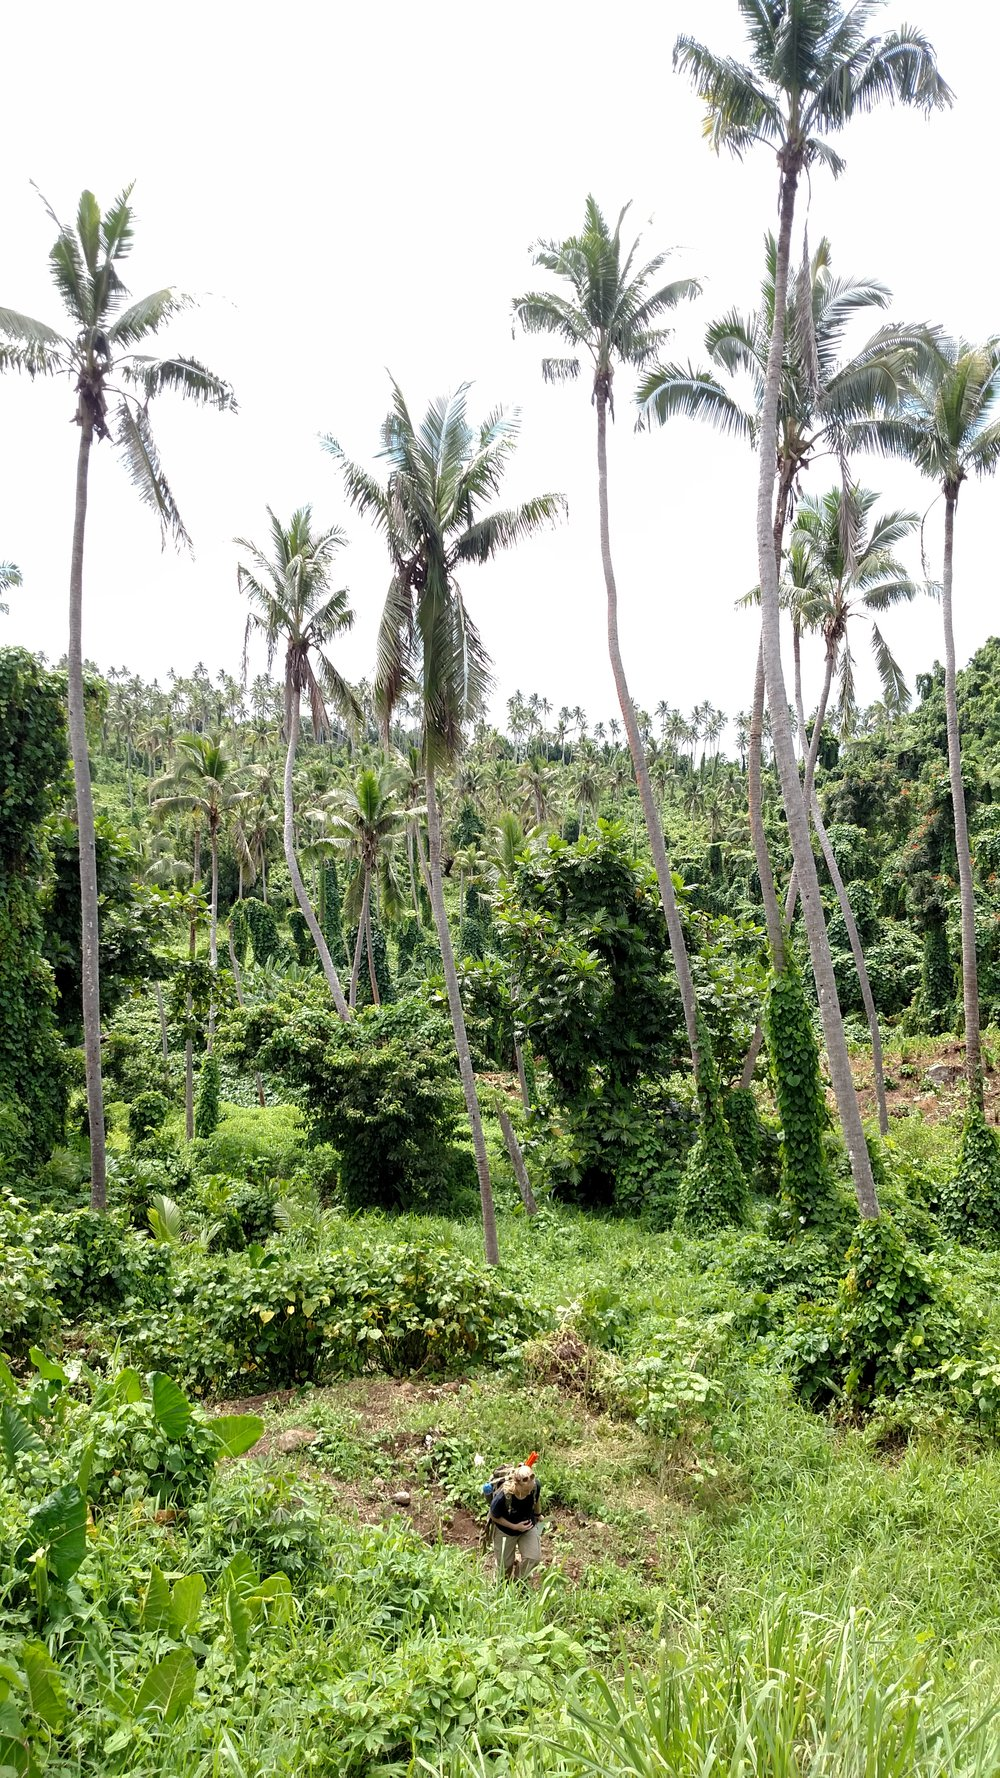 Agroforest in Taveuni after cyclone Winston